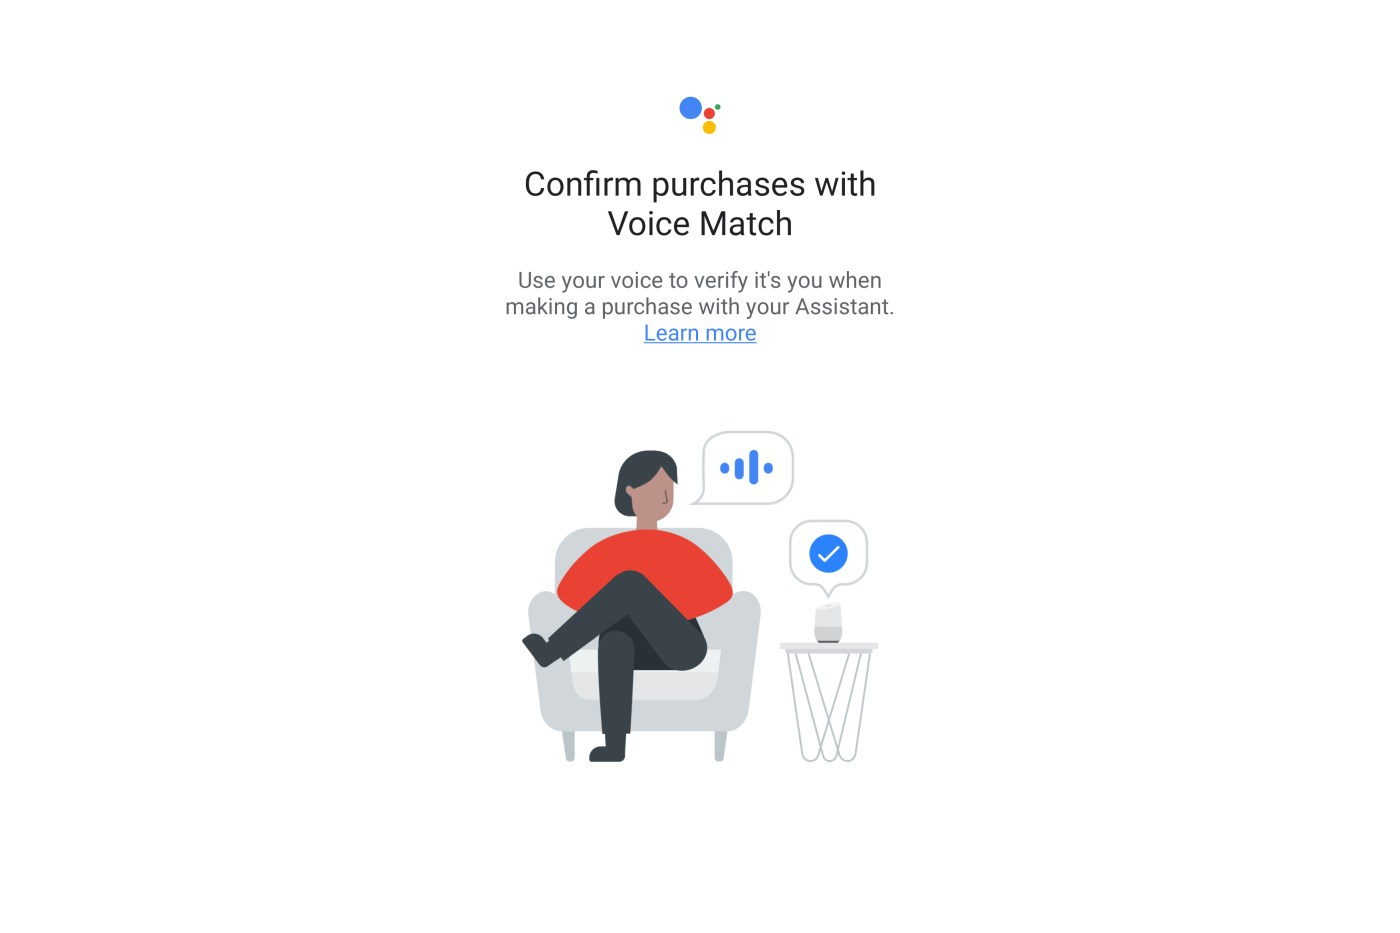 Google is testing its voice matching technology to secure Google Assistant purchases